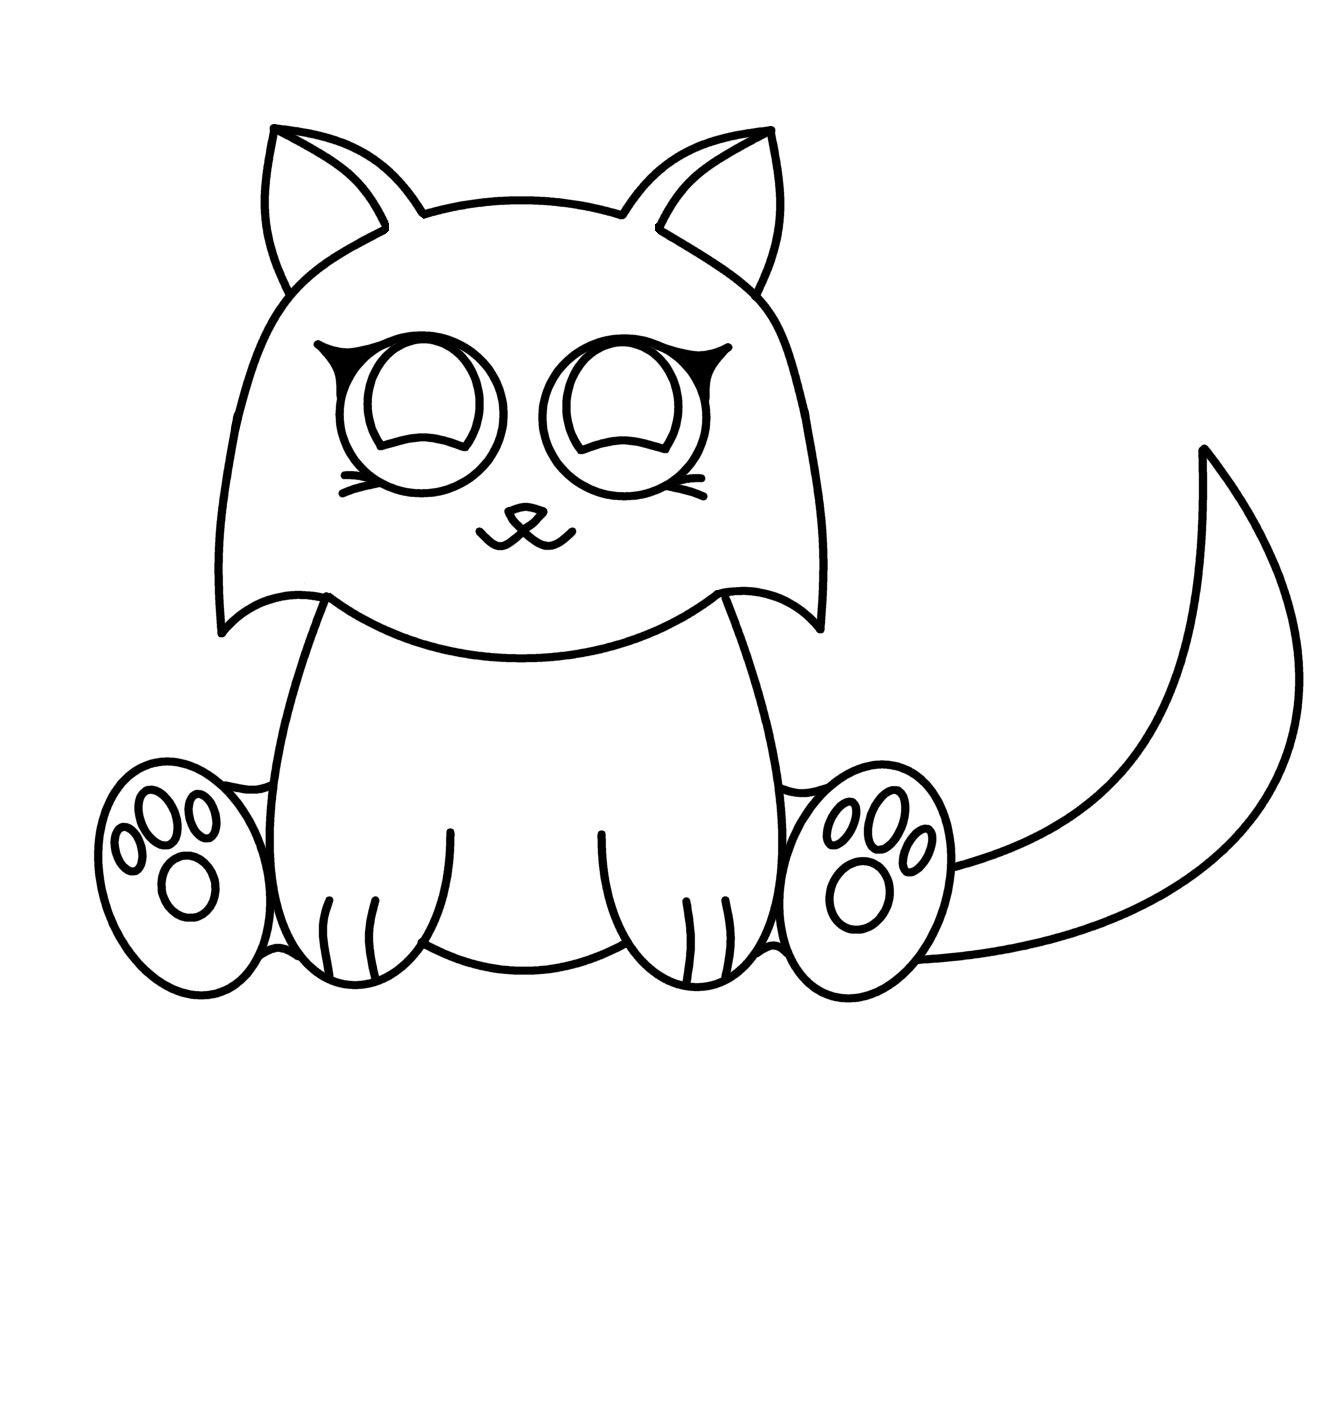 How To Draw Cartoons Anime Cat